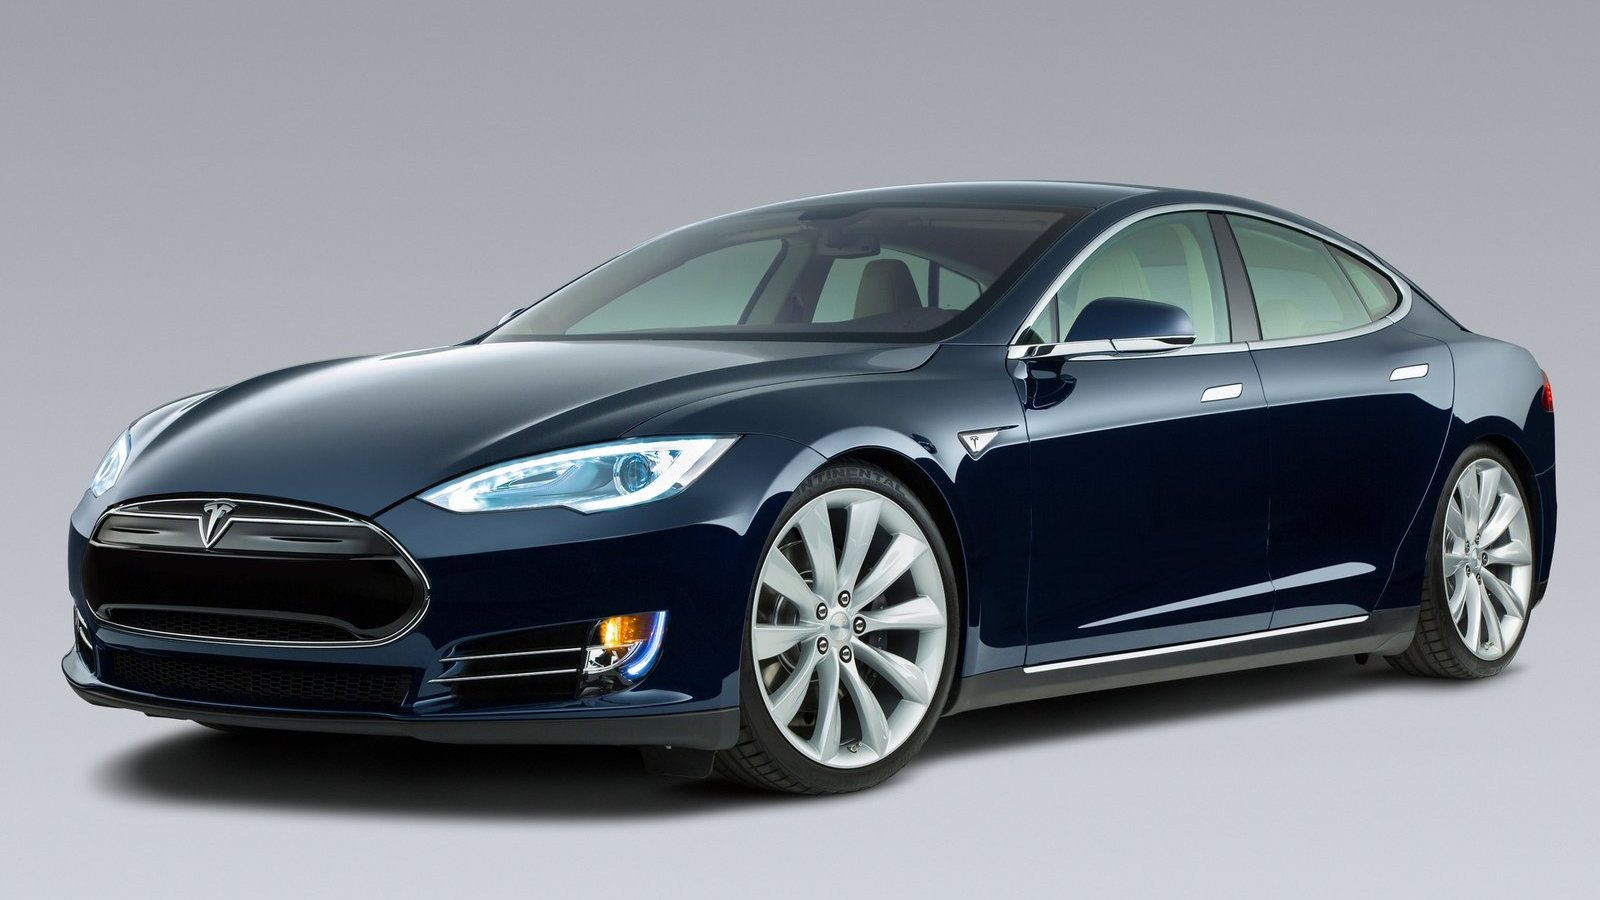 Tesla-Model_S_2013_1600x1200_wallpaper_15.jpeg